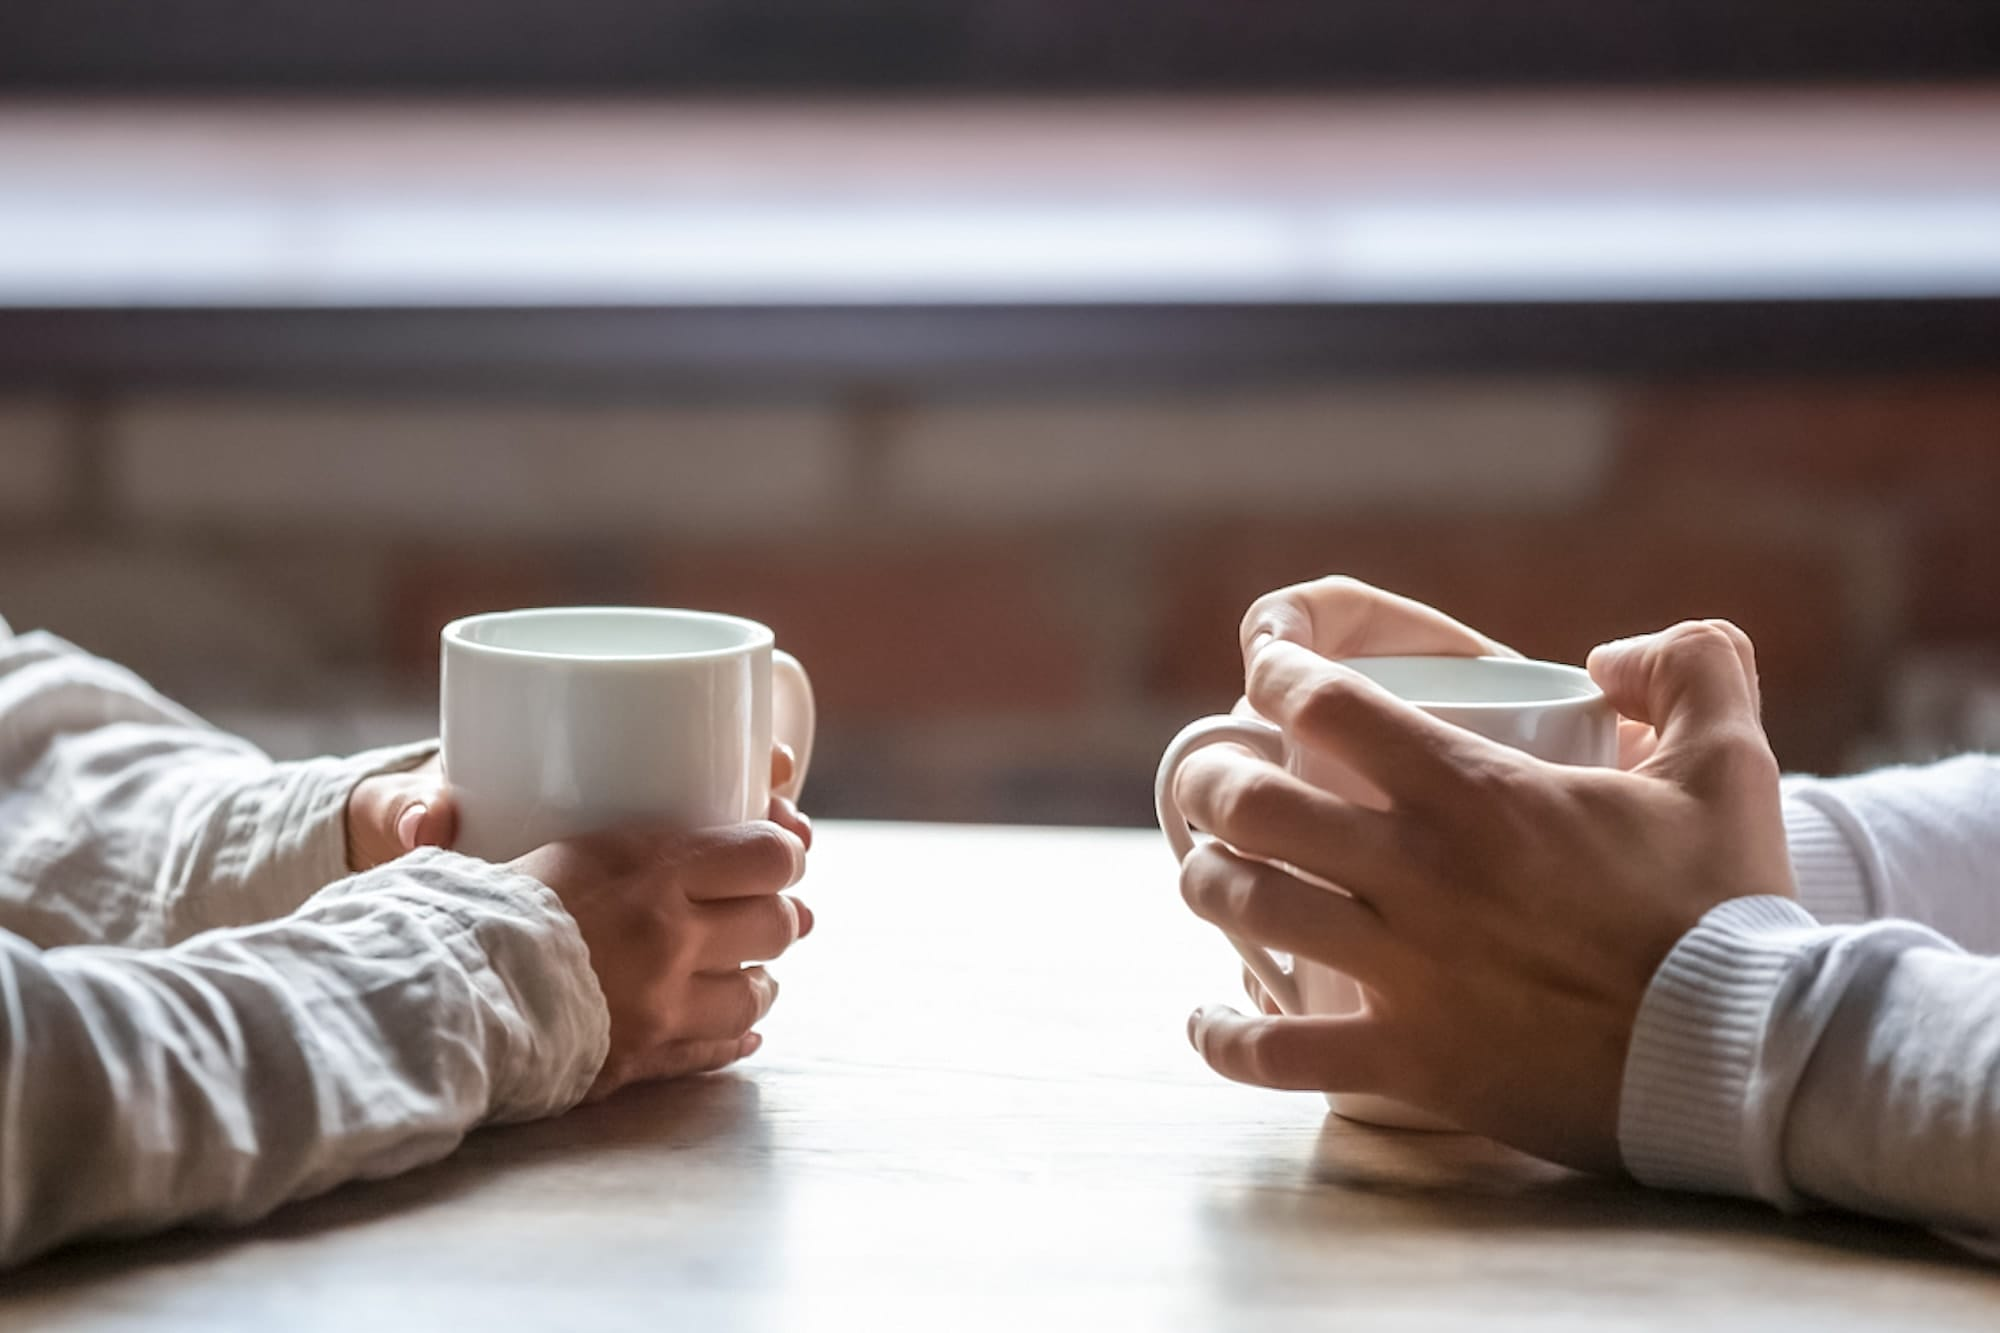 A credit union employee and member having a conversation over a cup of coffee